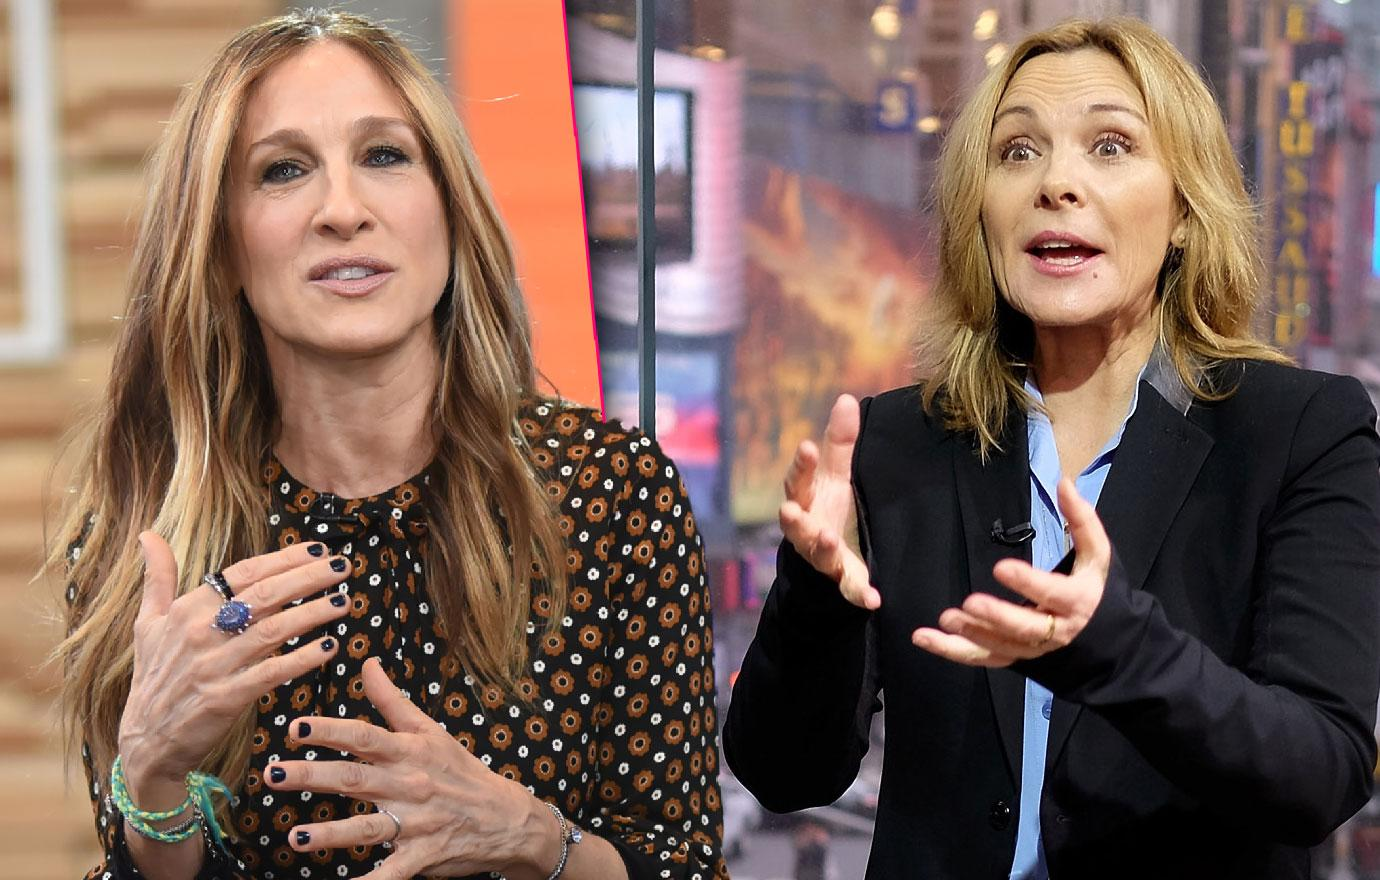 Kim Cattrall Slams Sarah Jessica Parker For Dead Brother Support